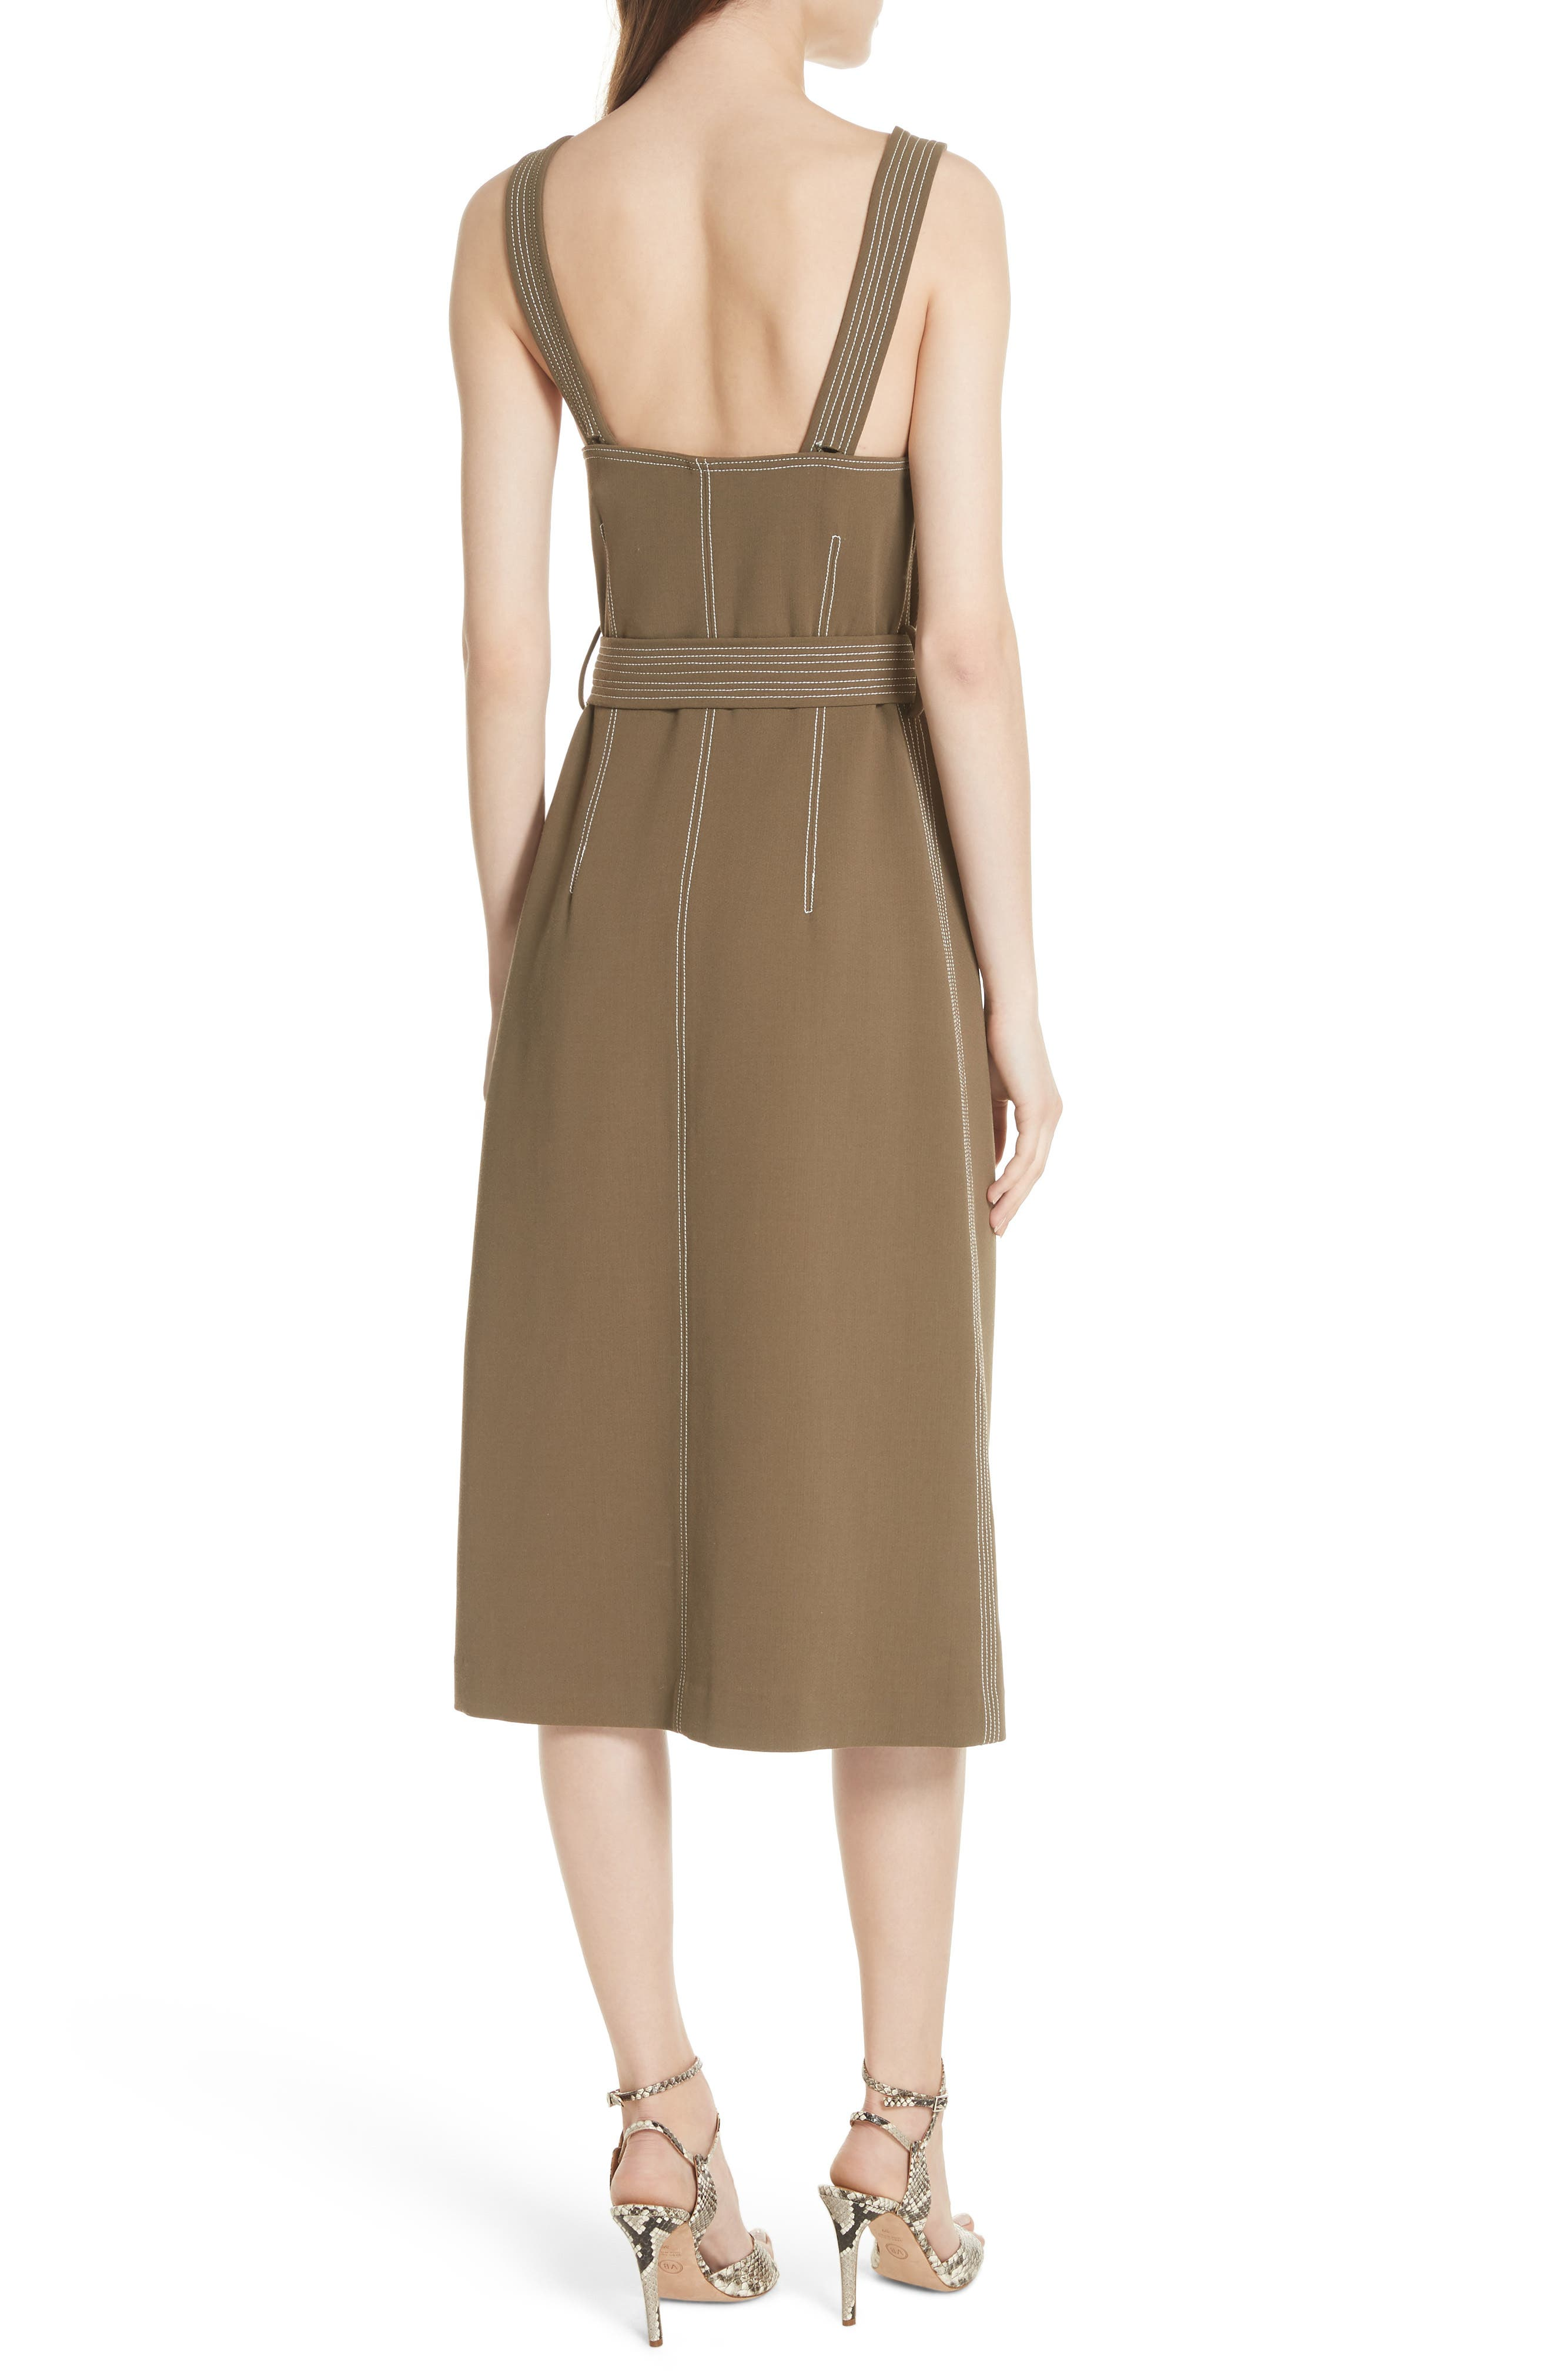 Adora Belted Dress,                             Alternate thumbnail 2, color,                             ARMY GREEN